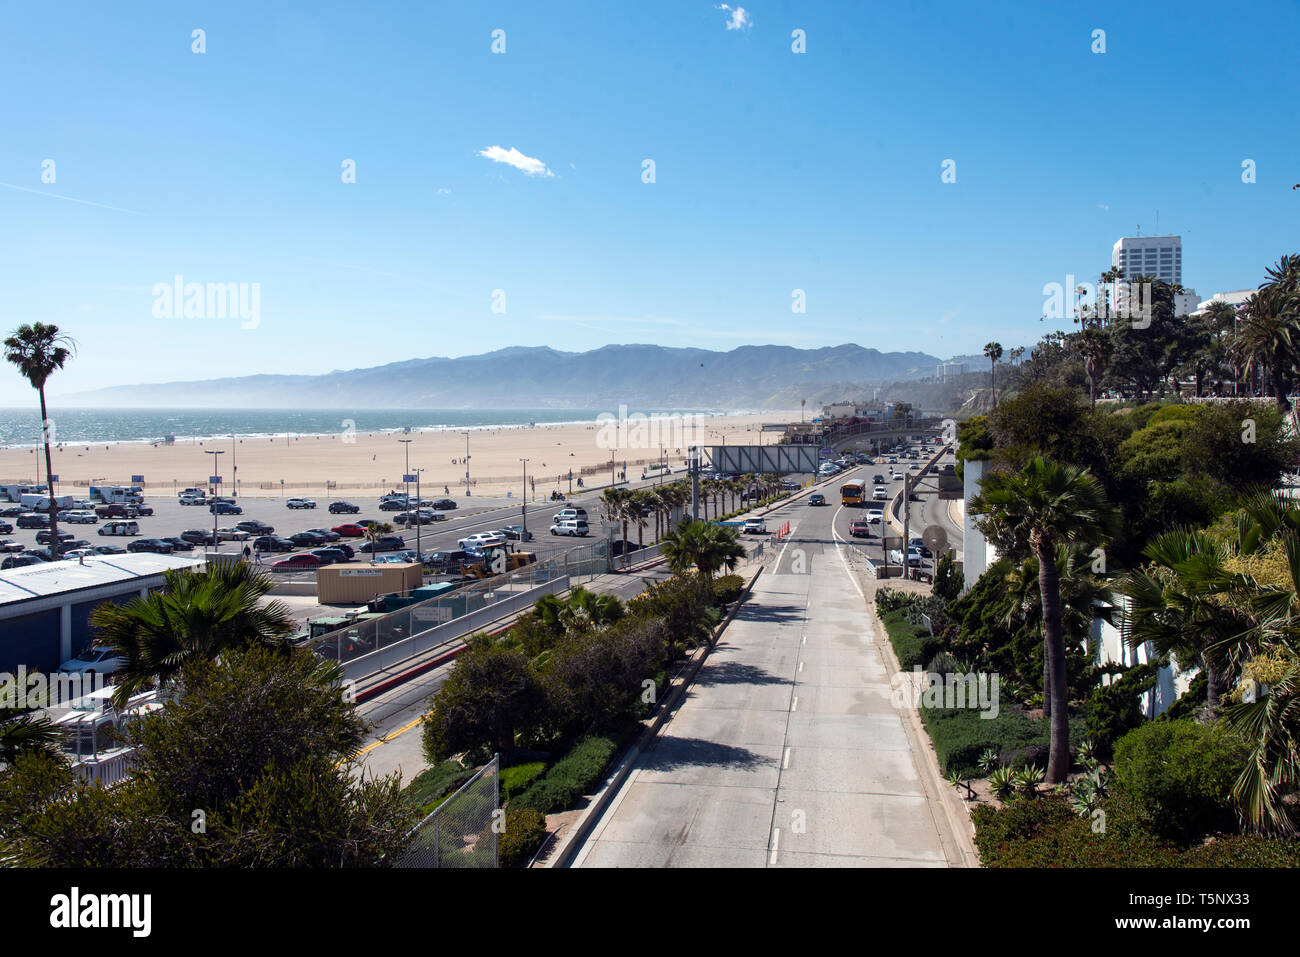 Junction of the Pacific Coast Highway and 10 Freeway in Santa Monica California - Stock Image